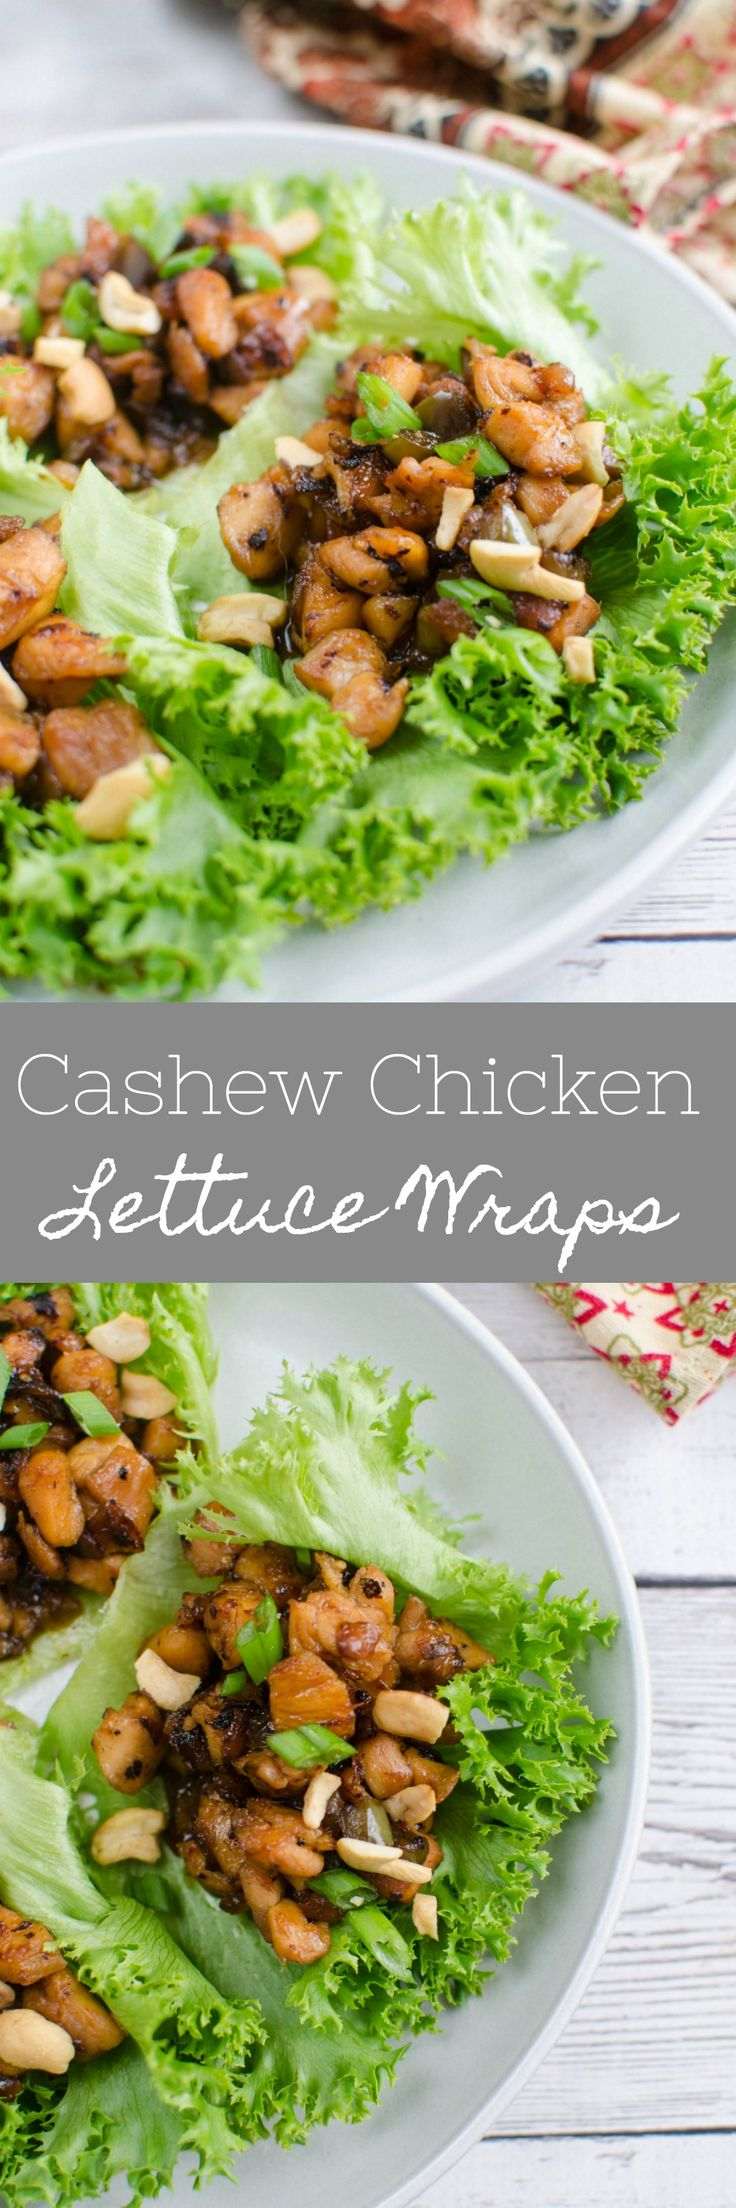 Healthy eating doesn't have to be boring.  Cashew Chicken Lettuce Wraps!: http://fakeginger.com/cashew-chicken-lettuce-wraps/